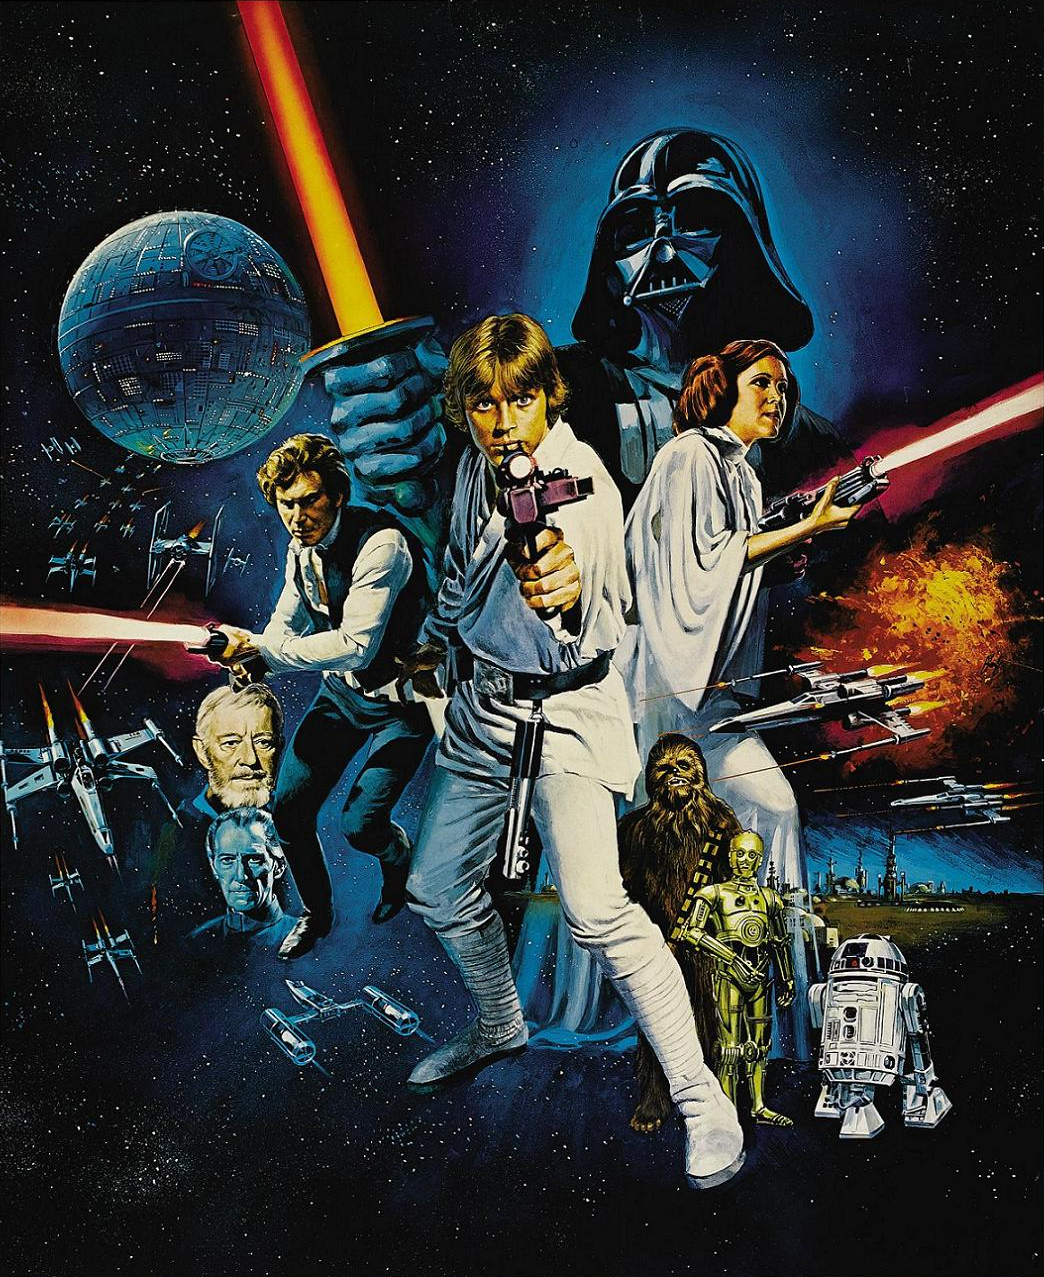 Download Star Wars Retro Wallpaper Gallery